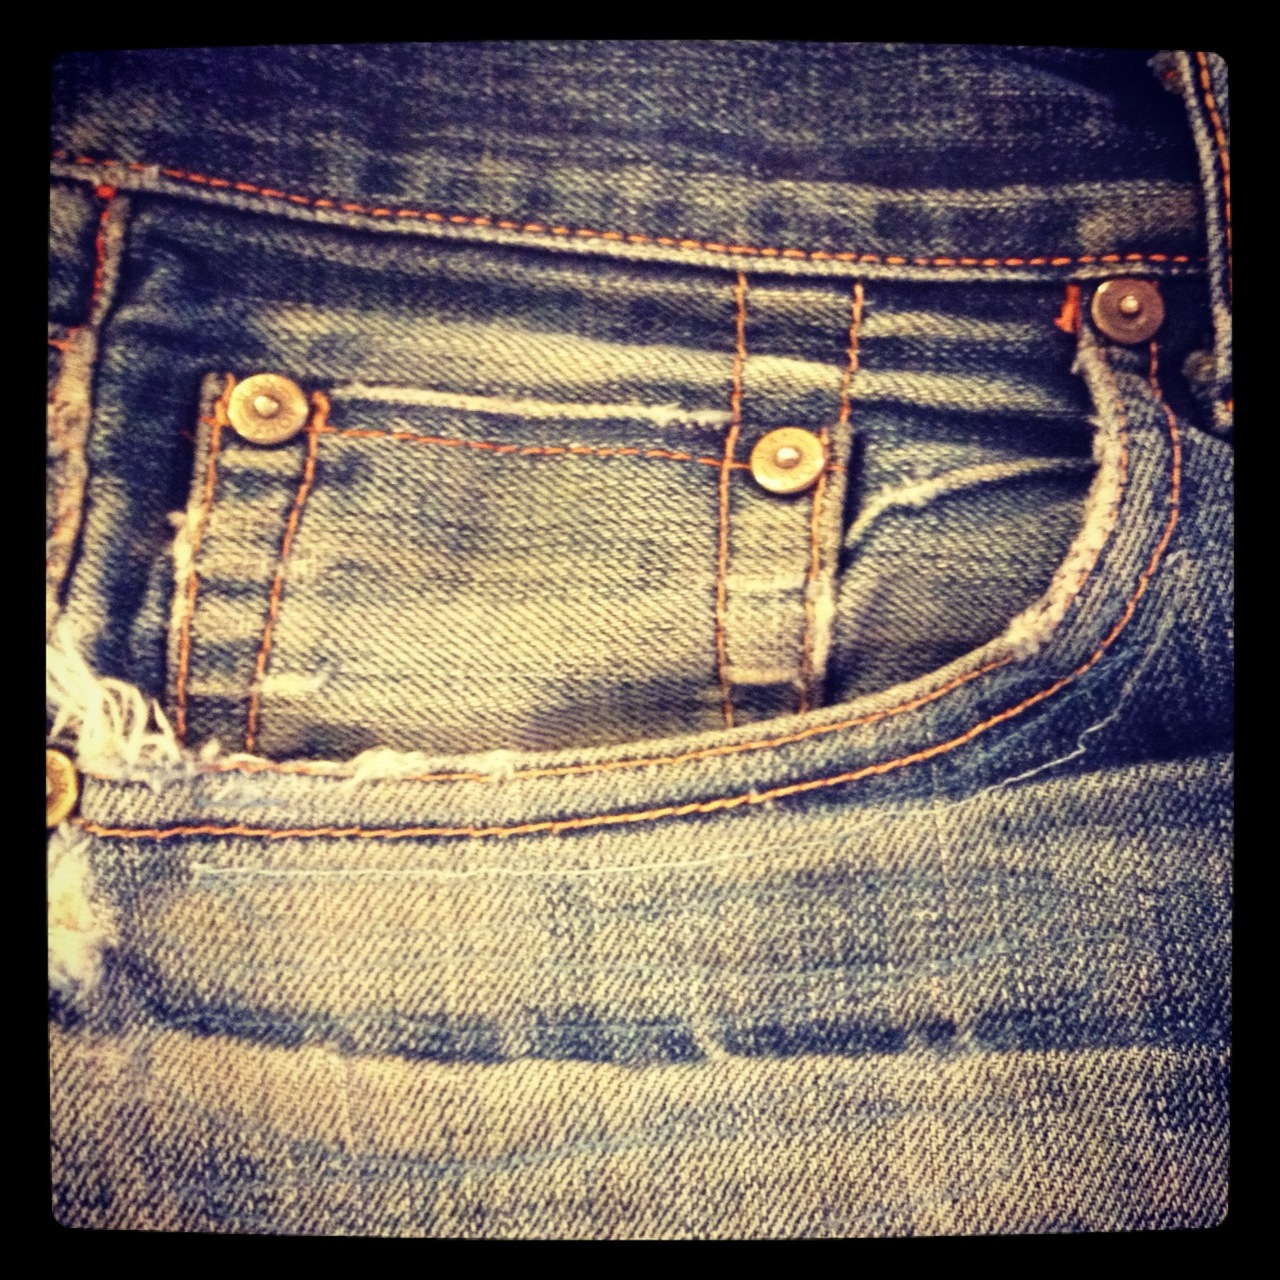 Who uses the coin pocket or 5th pocket on their 5 pocket jeans? I do but it's never easy to get coins out. Am I the only one, let me know……